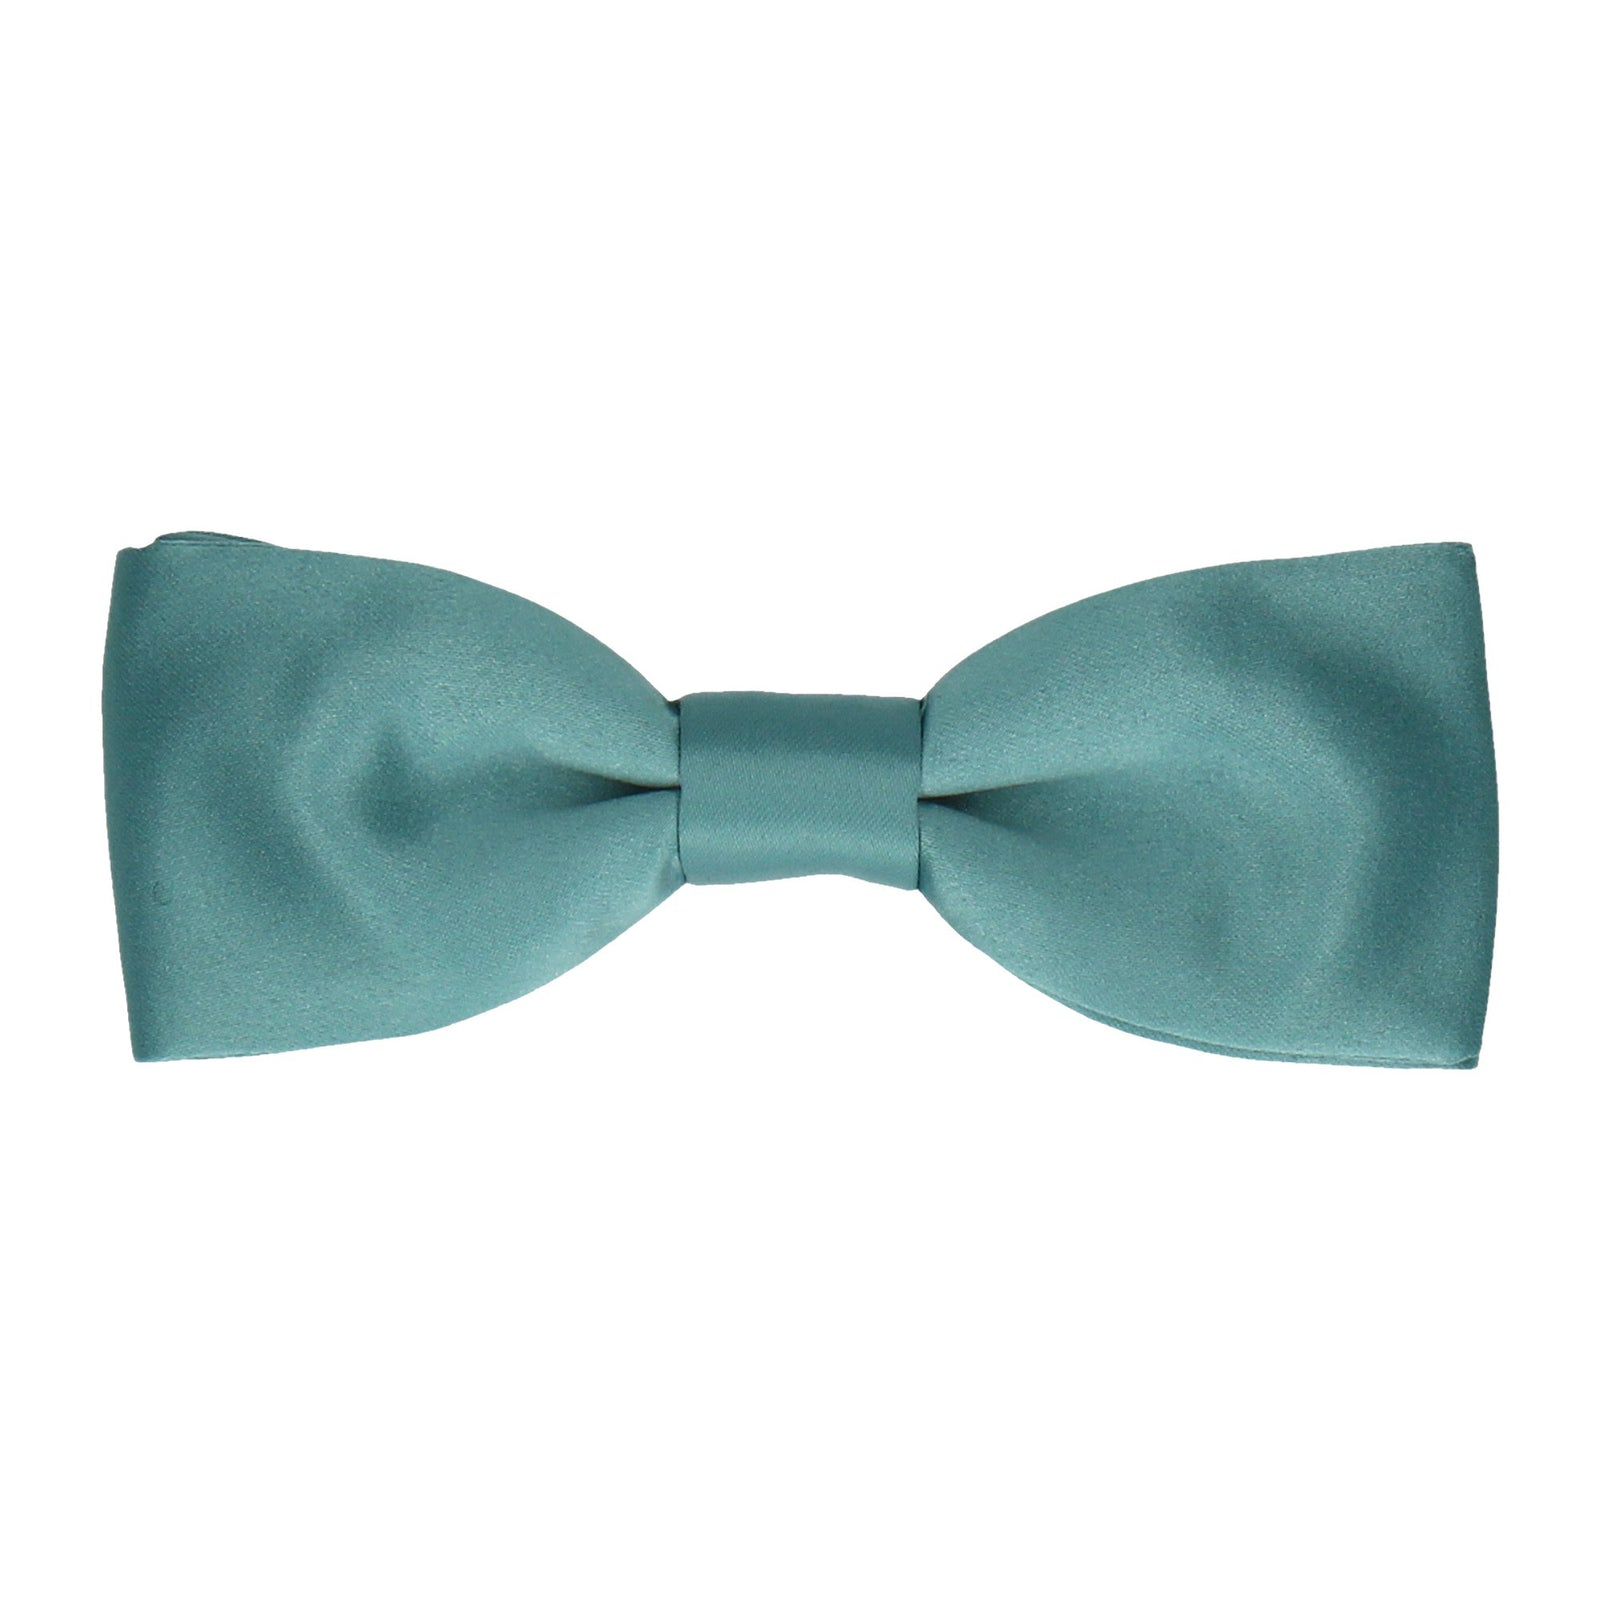 Sea Green Plain Solid Satin Bow Tie